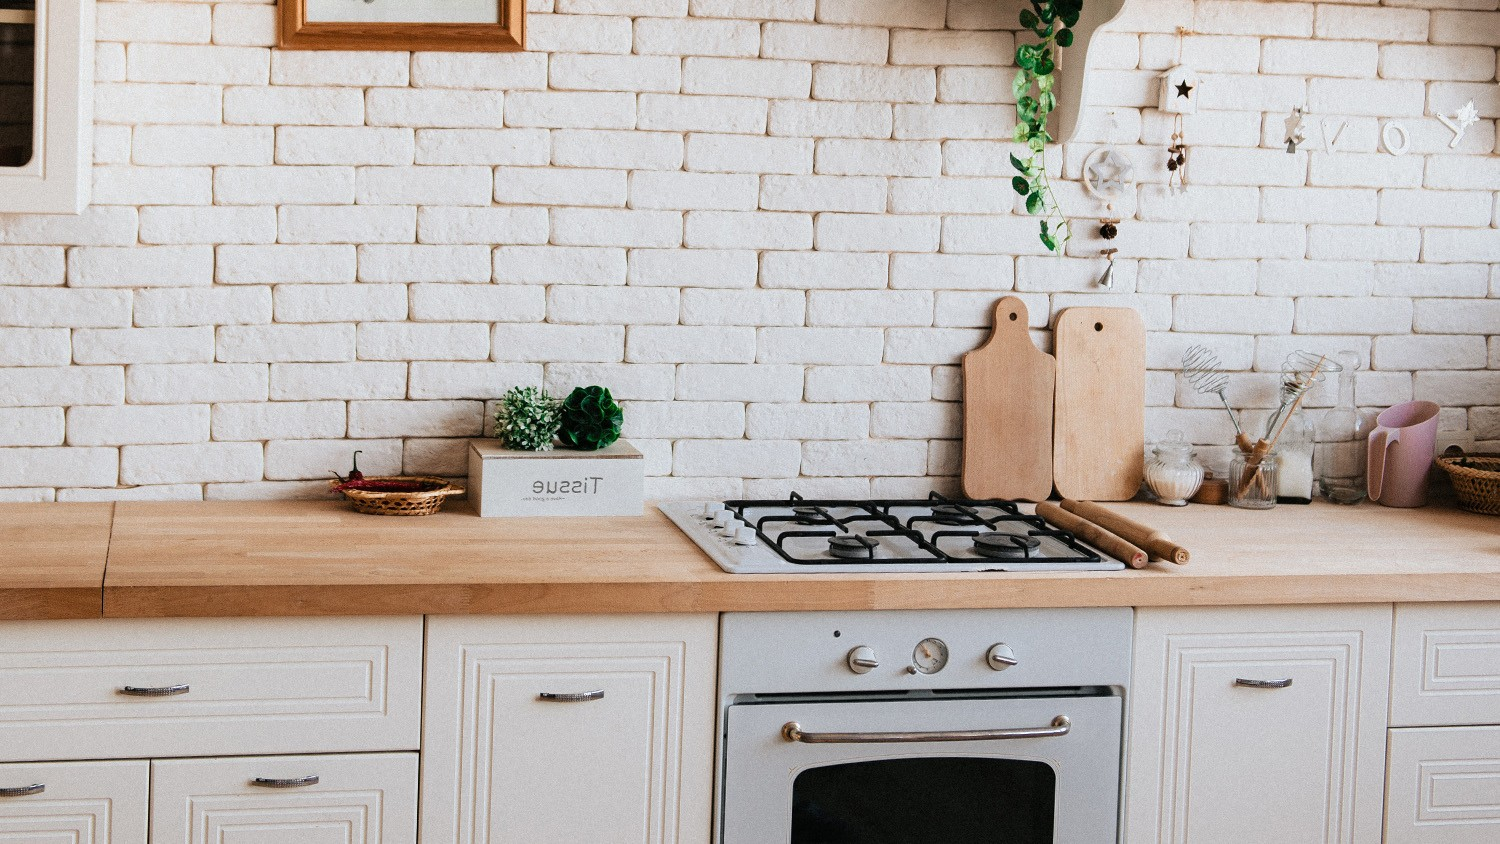 Kitchen Design And Decor Ideas And Inspiration